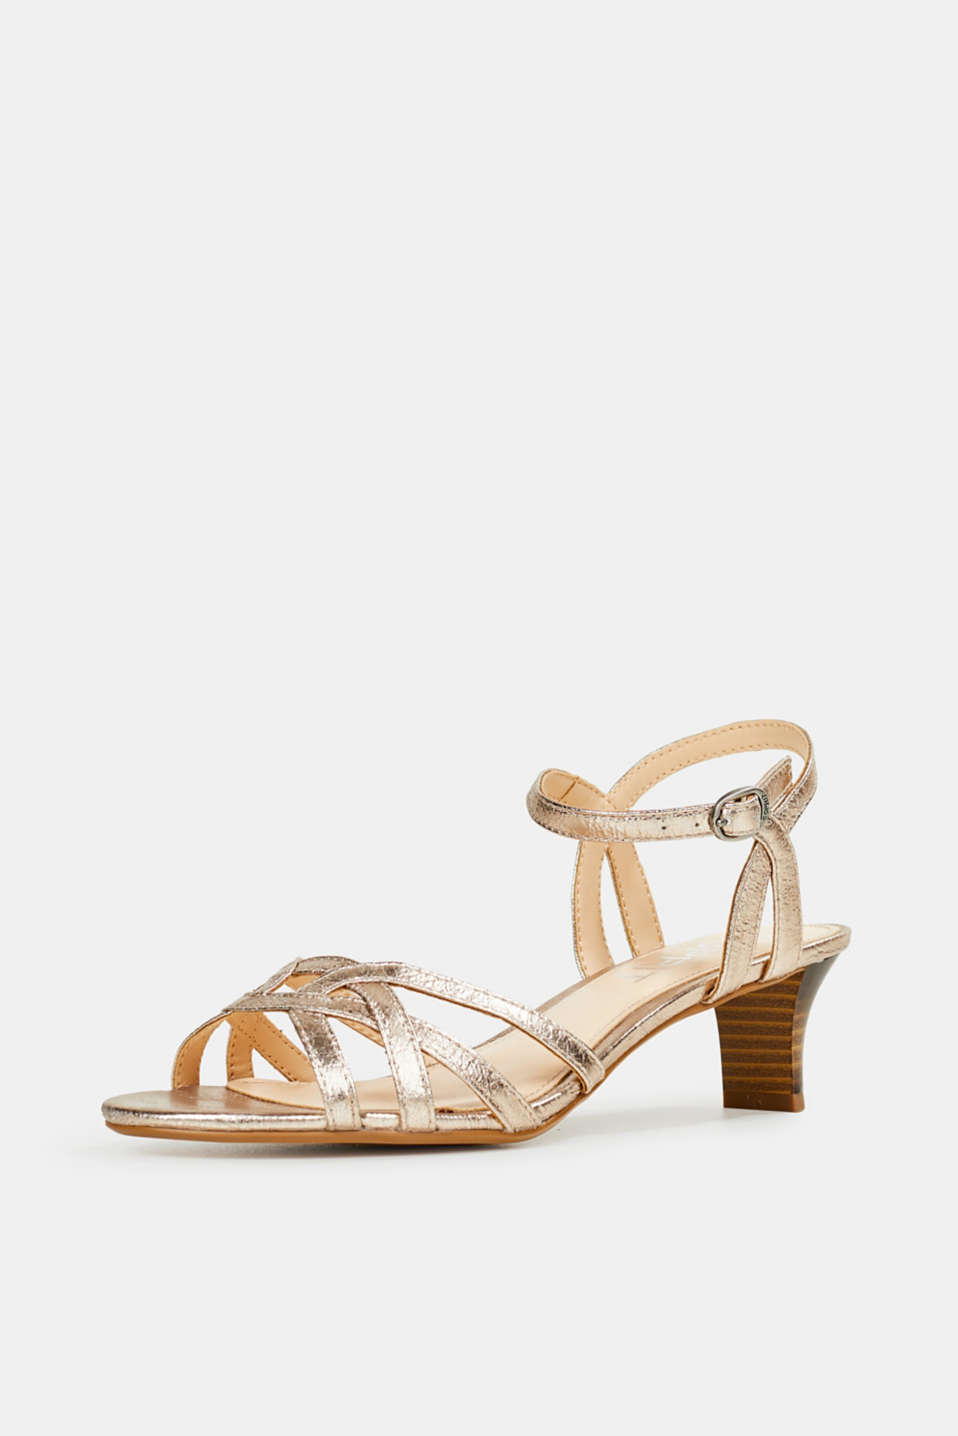 Shiny strappy sandals, SKIN BEIGE, detail image number 2